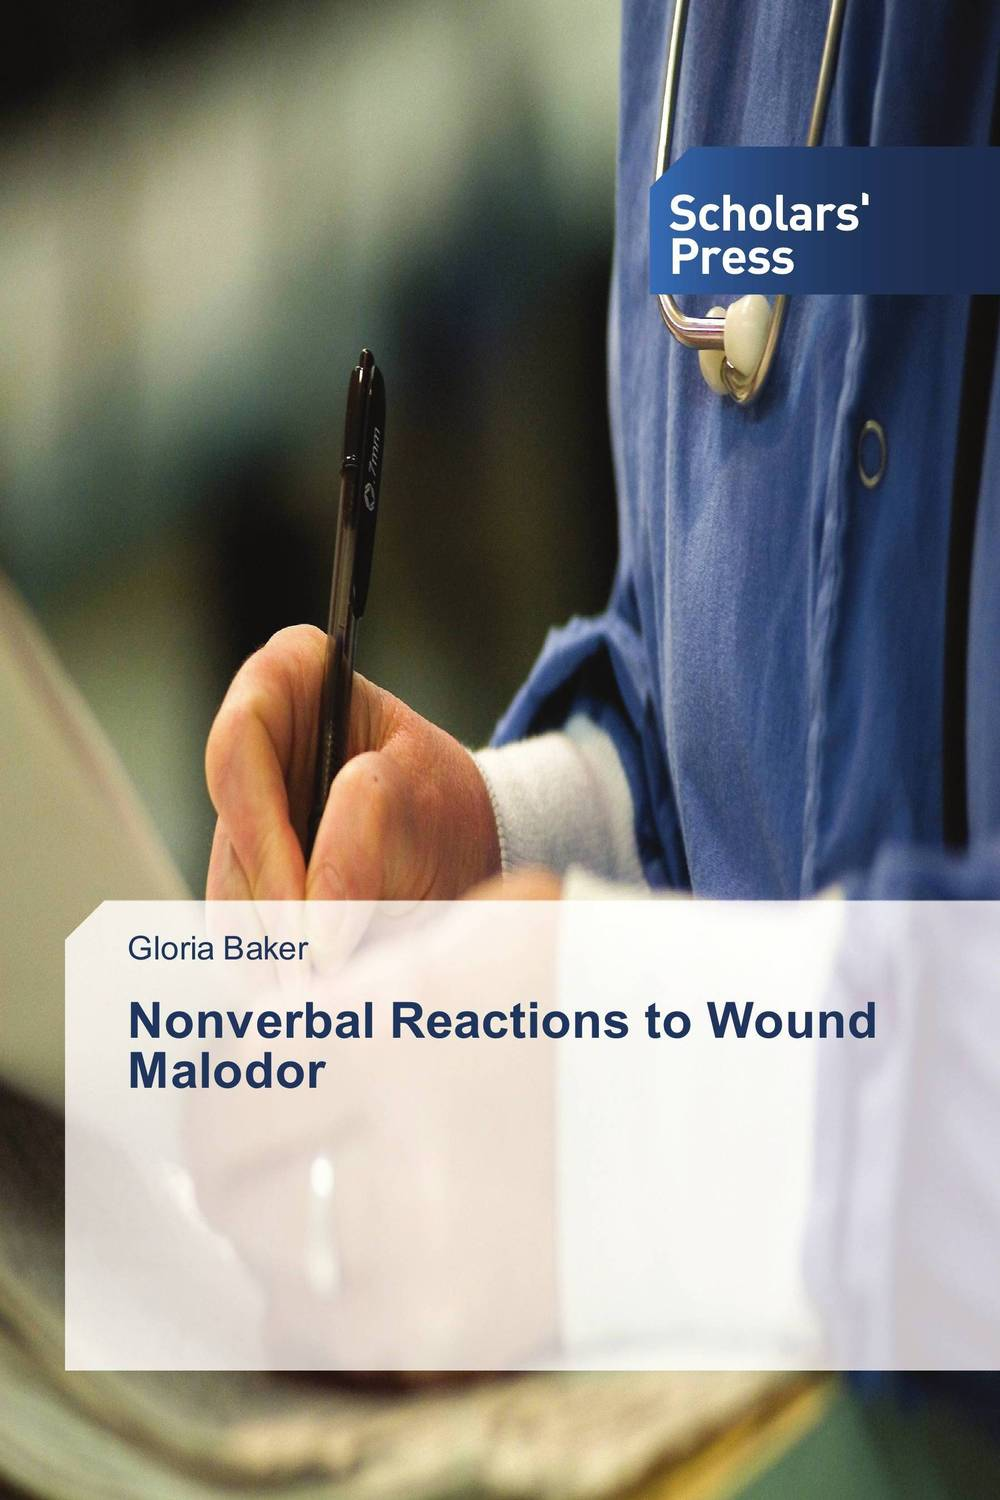 Nonverbal Reactions to Wound Malodor